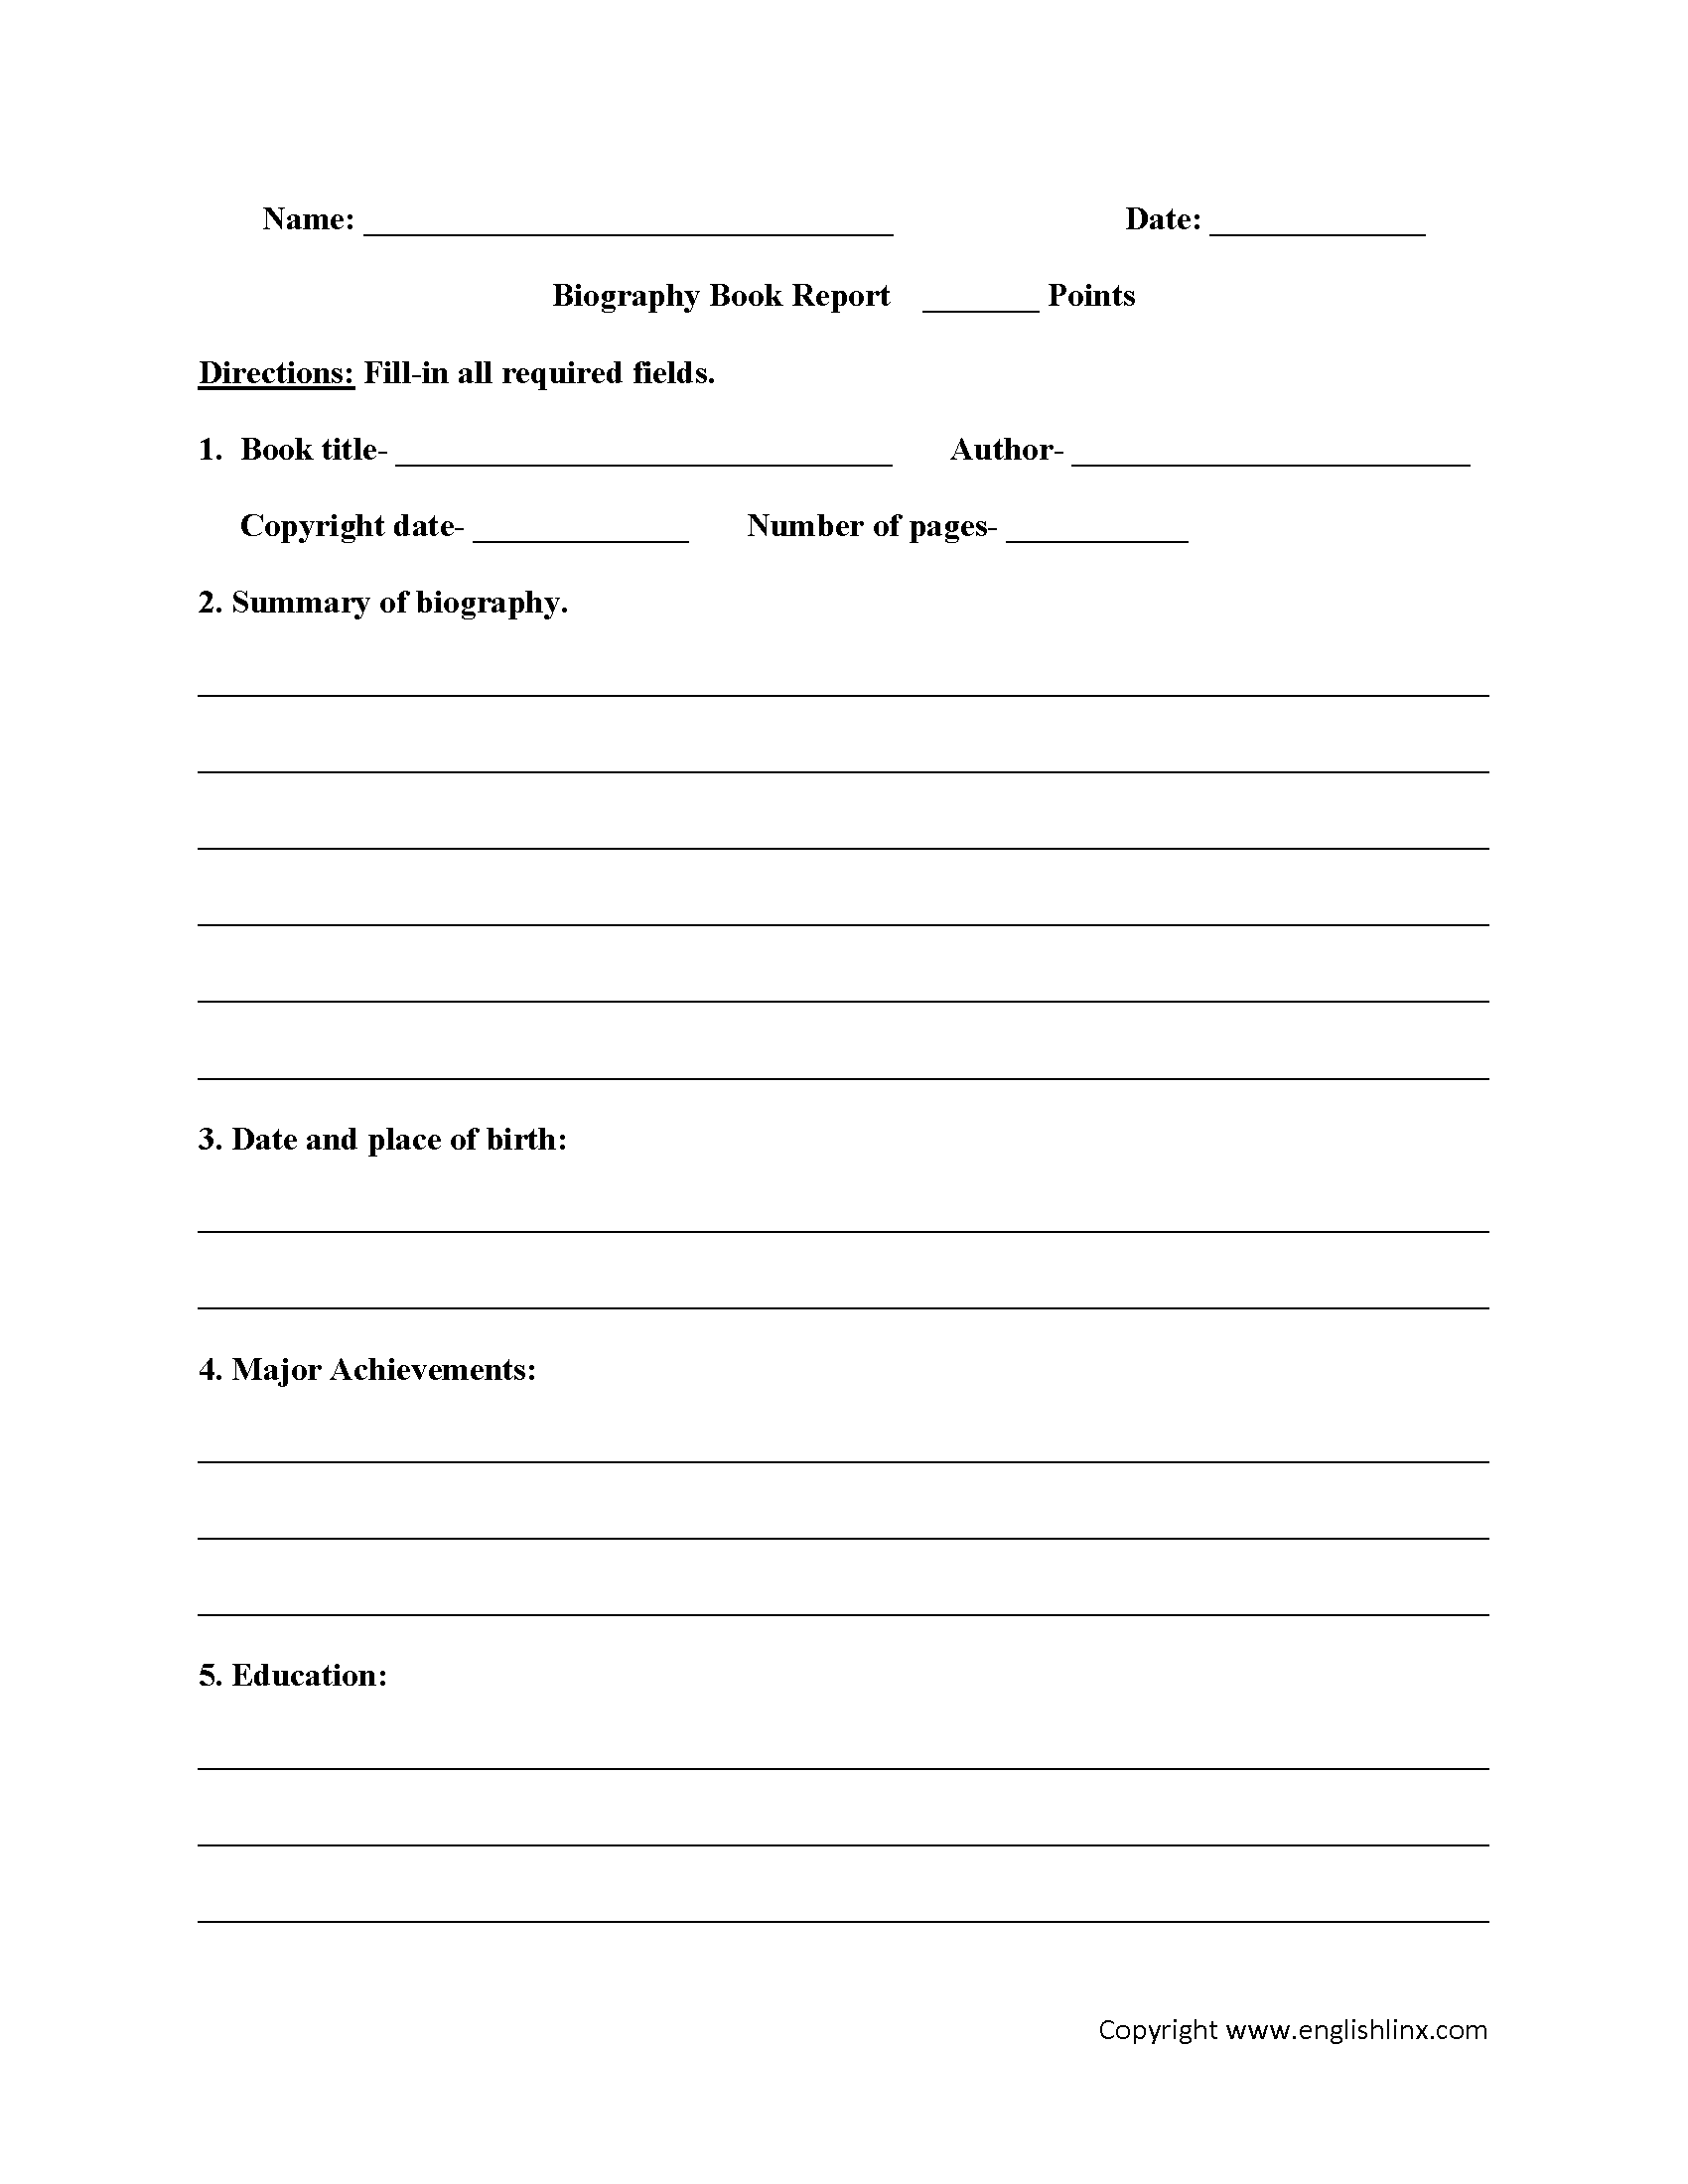 How To Write A Biography For Kids Worksheet